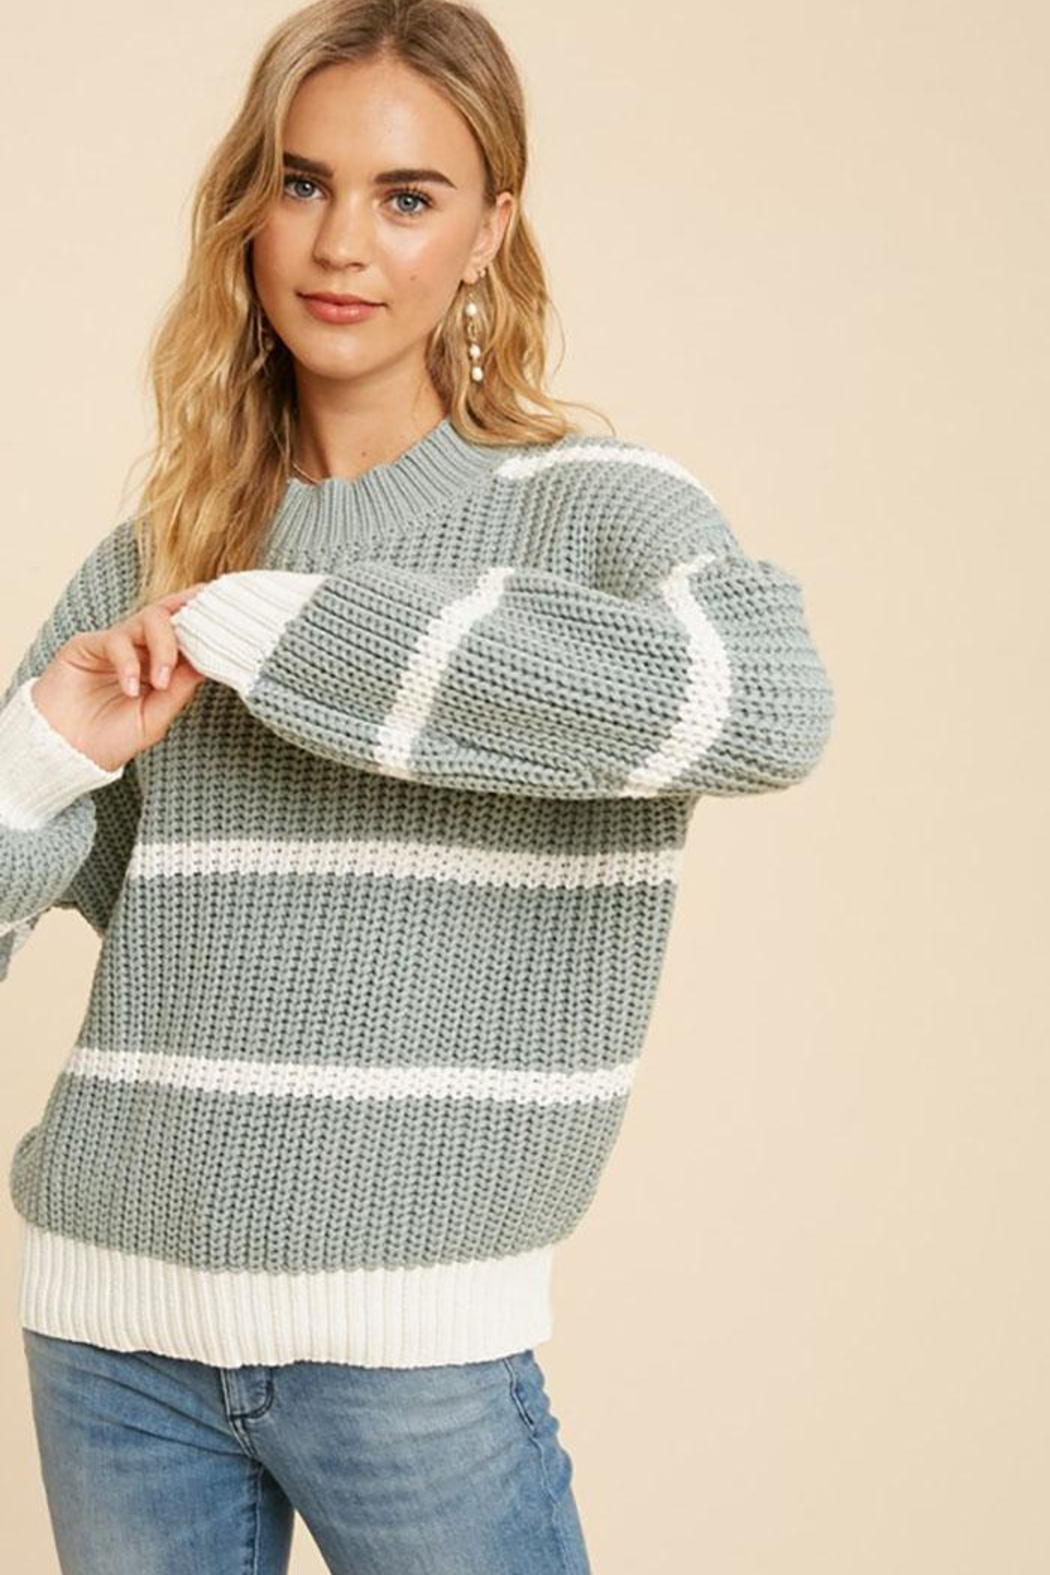 In Loom Cotton Blend Knit Striped Pullover Sweater - Front Full Image